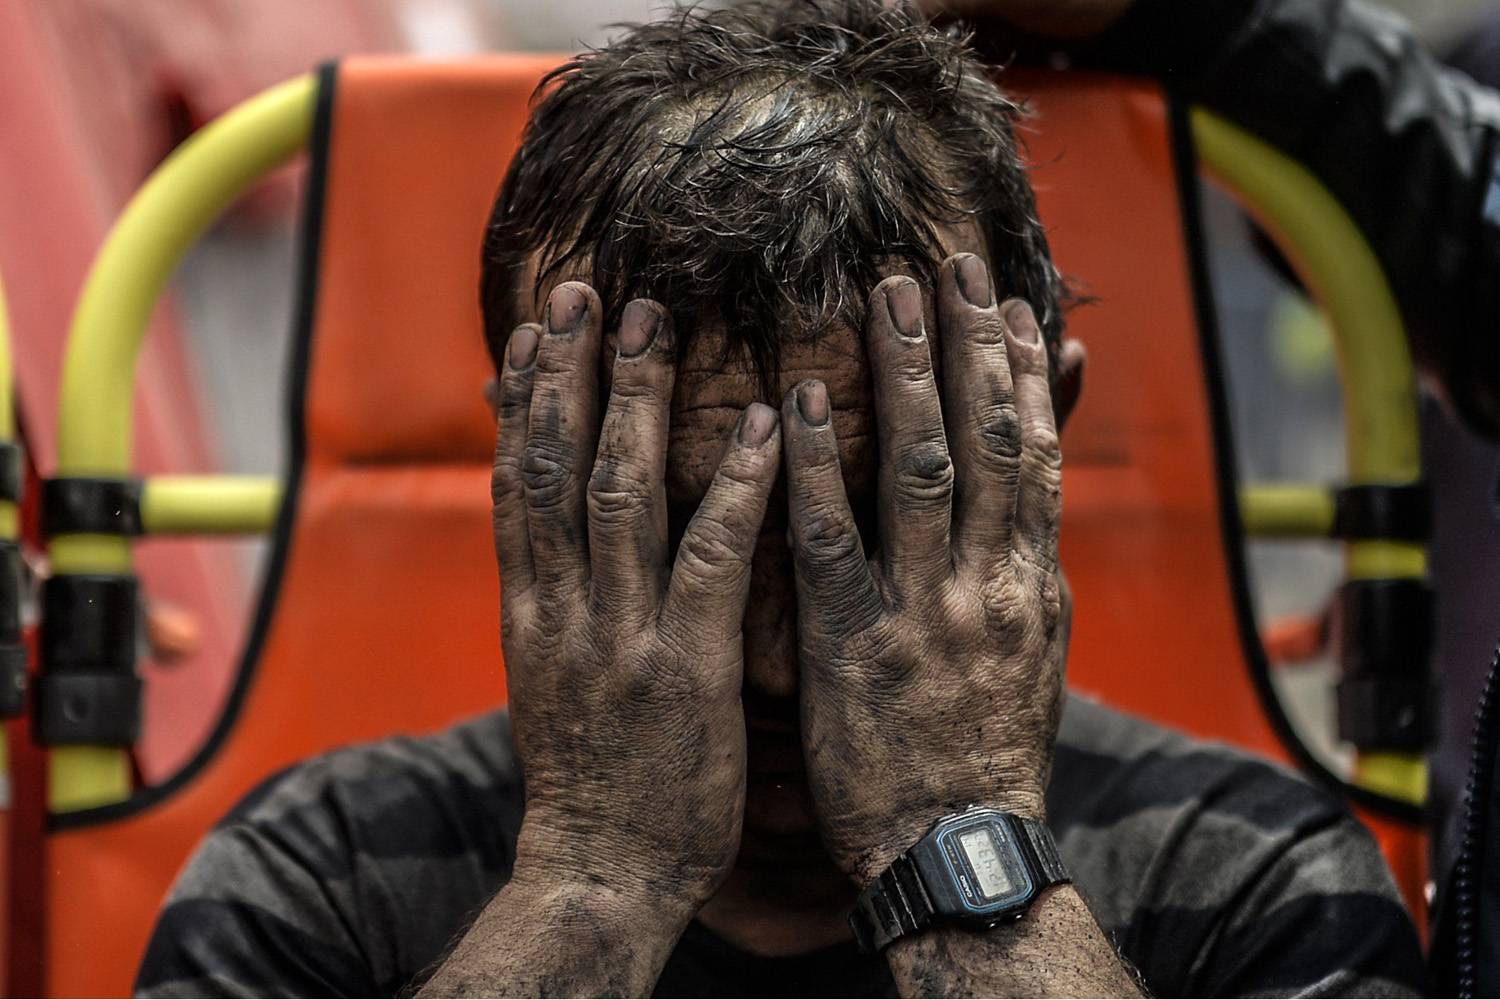 May 14, 2014 A miner reacts after being affected with toxic gas while searching for co-workers who remained trapped underground after an explosion and fire in their coal mine in the western Turkish province of Manisa killed at least 284 people.